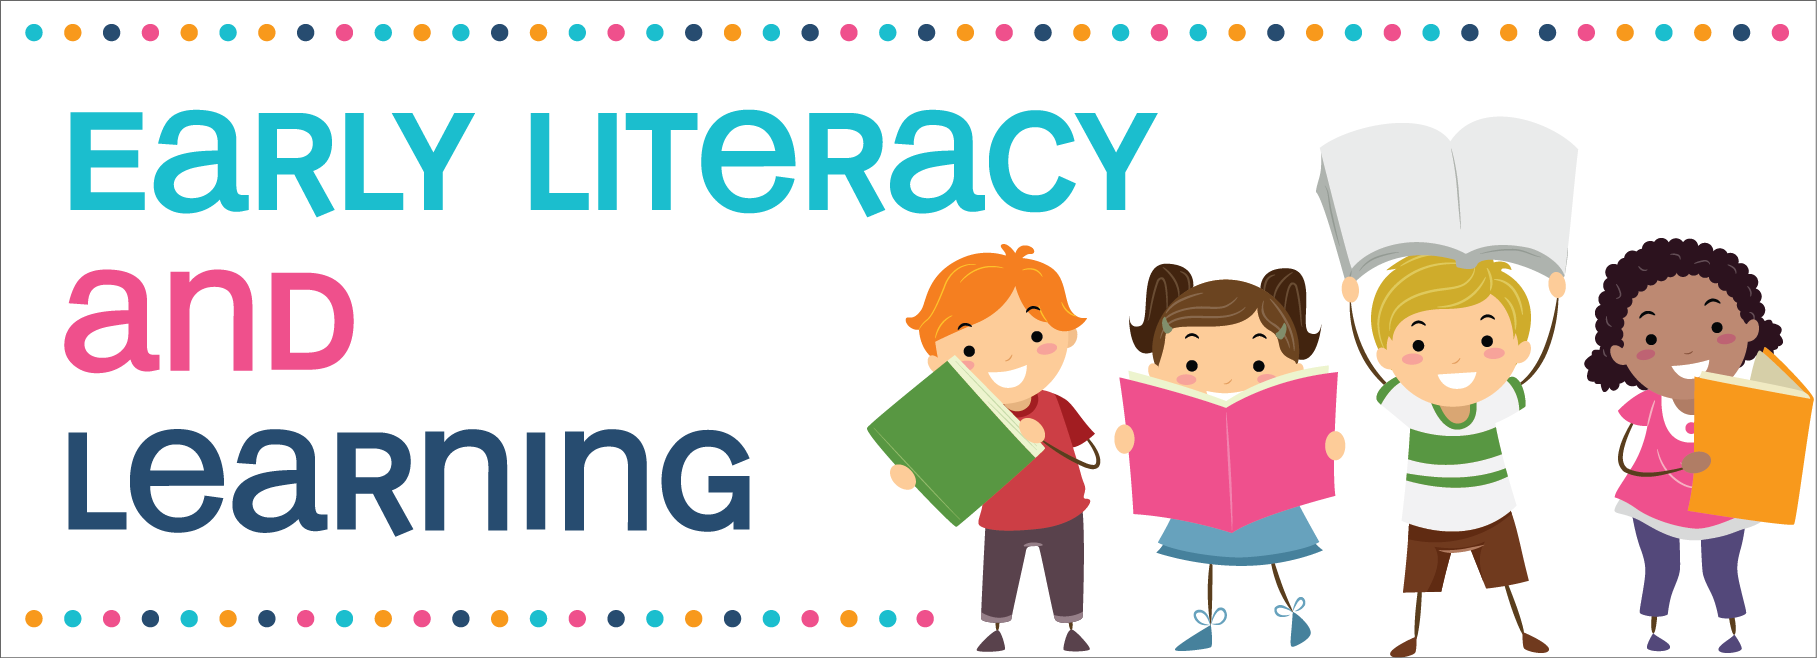 Early literacy learning traverse. Storytime clipart reading challenge